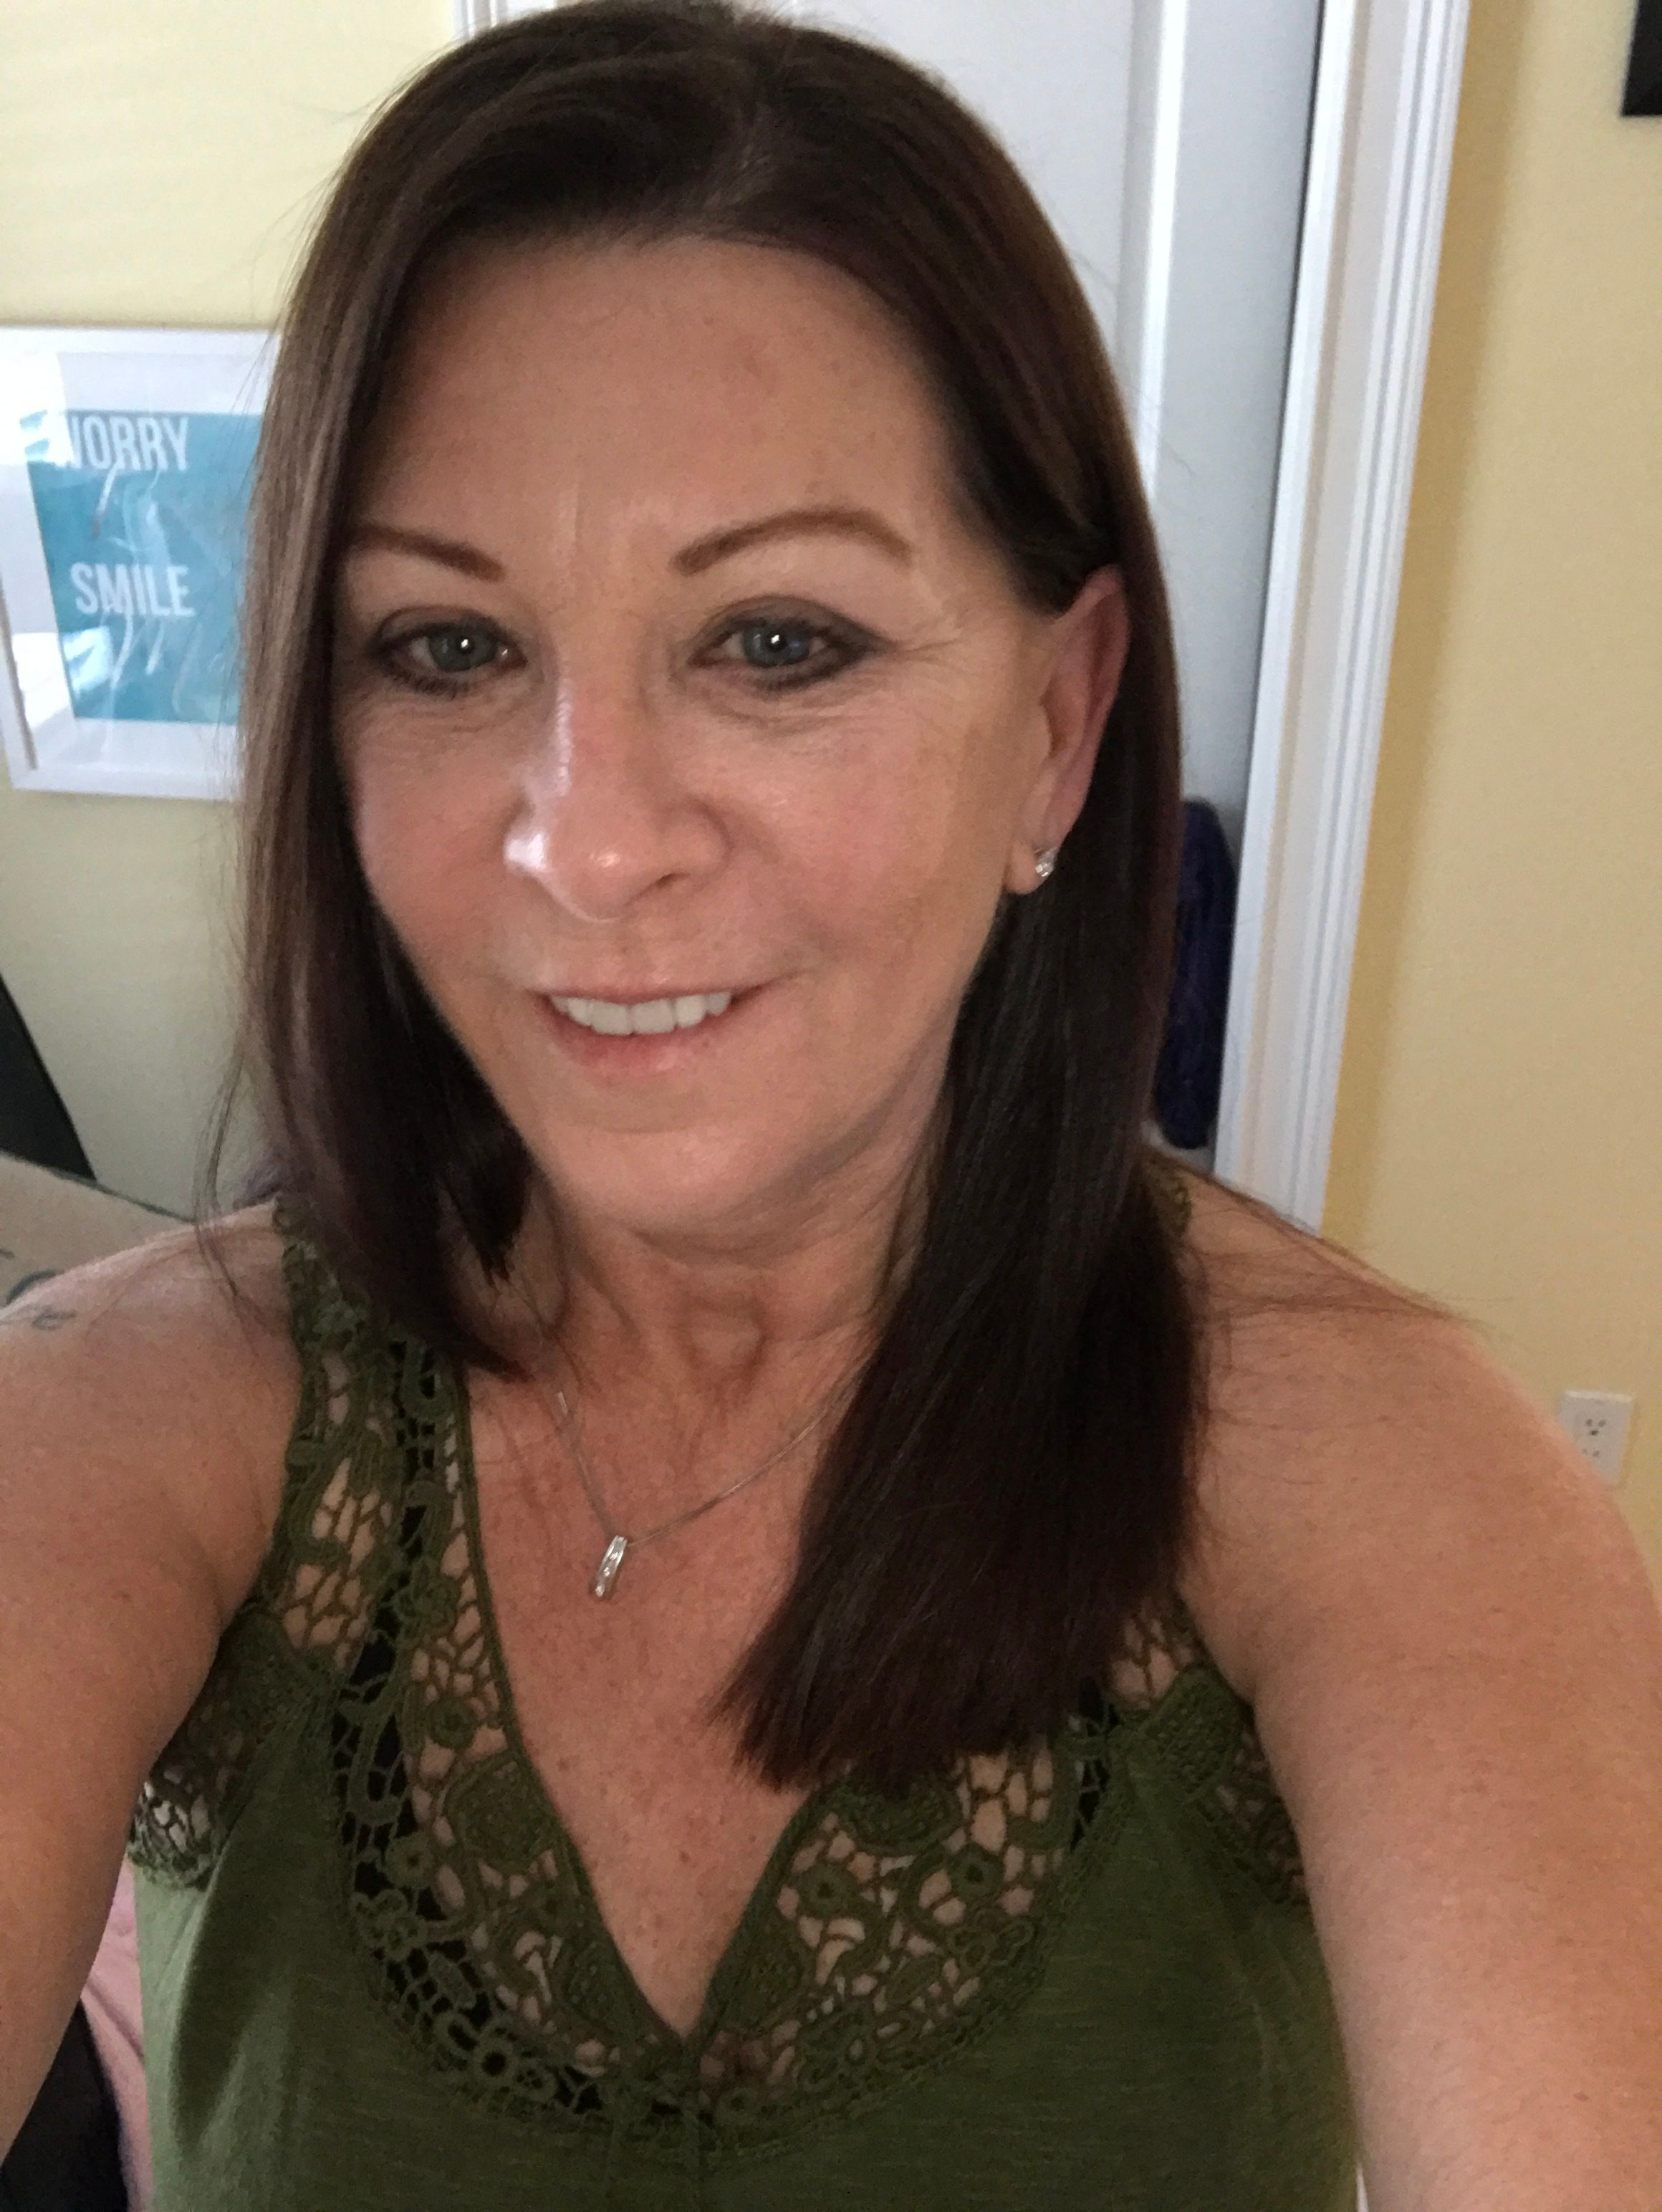 altamonte springs buddhist personals Ring in spring @ the why not lounge  plentyoffish dating forums are a place to meet singles and get dating advice or share dating  altamonte springs, .